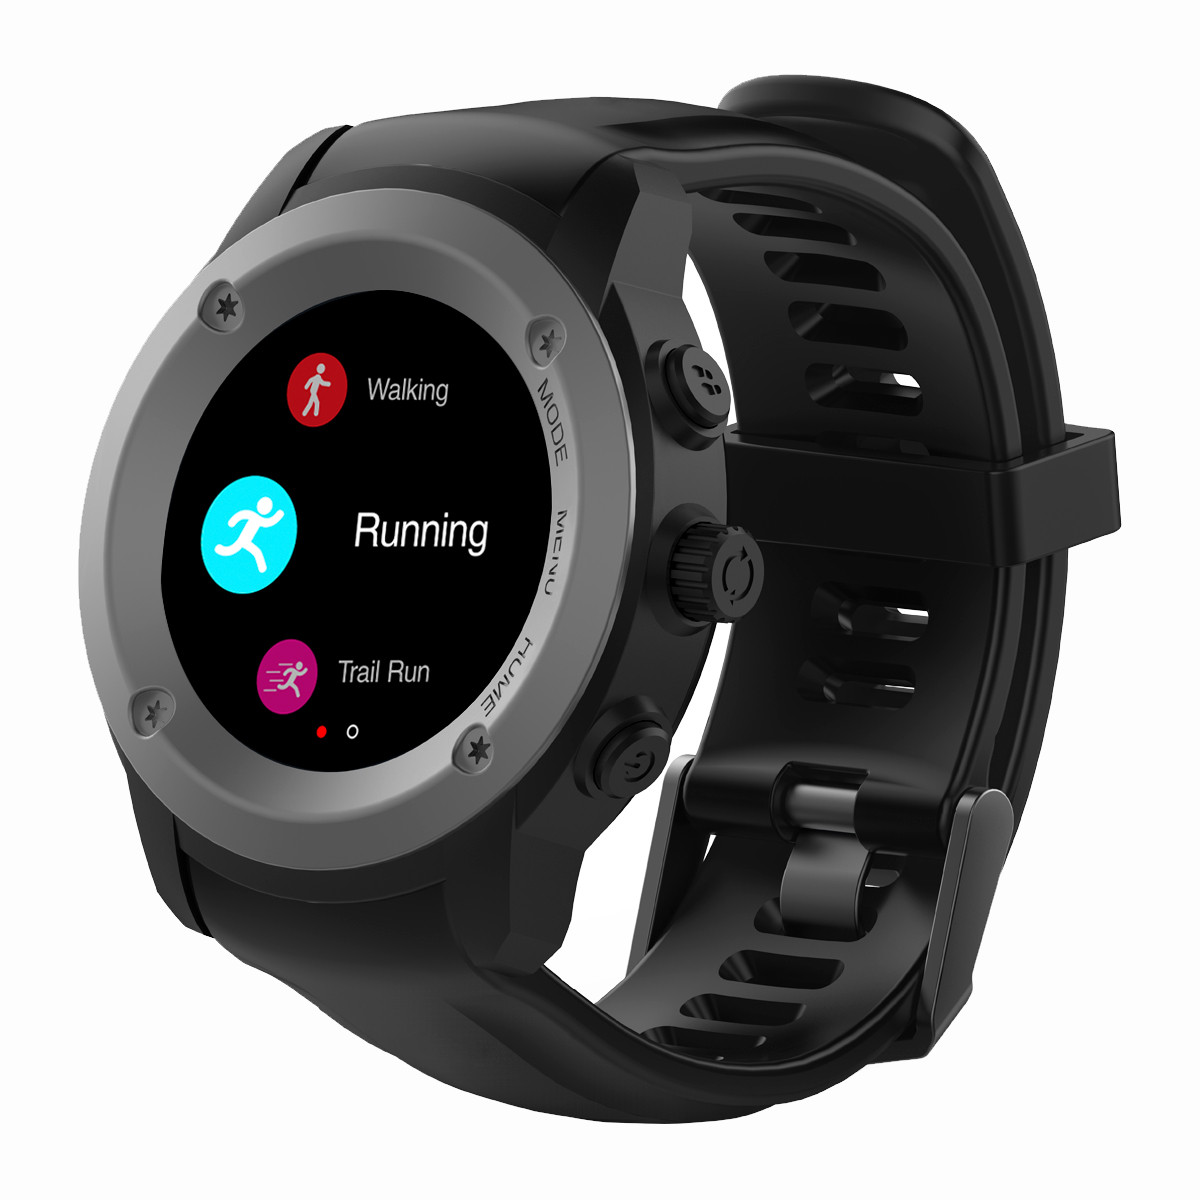 Fitgo Sportwatch FW 17 POWER-img-1263